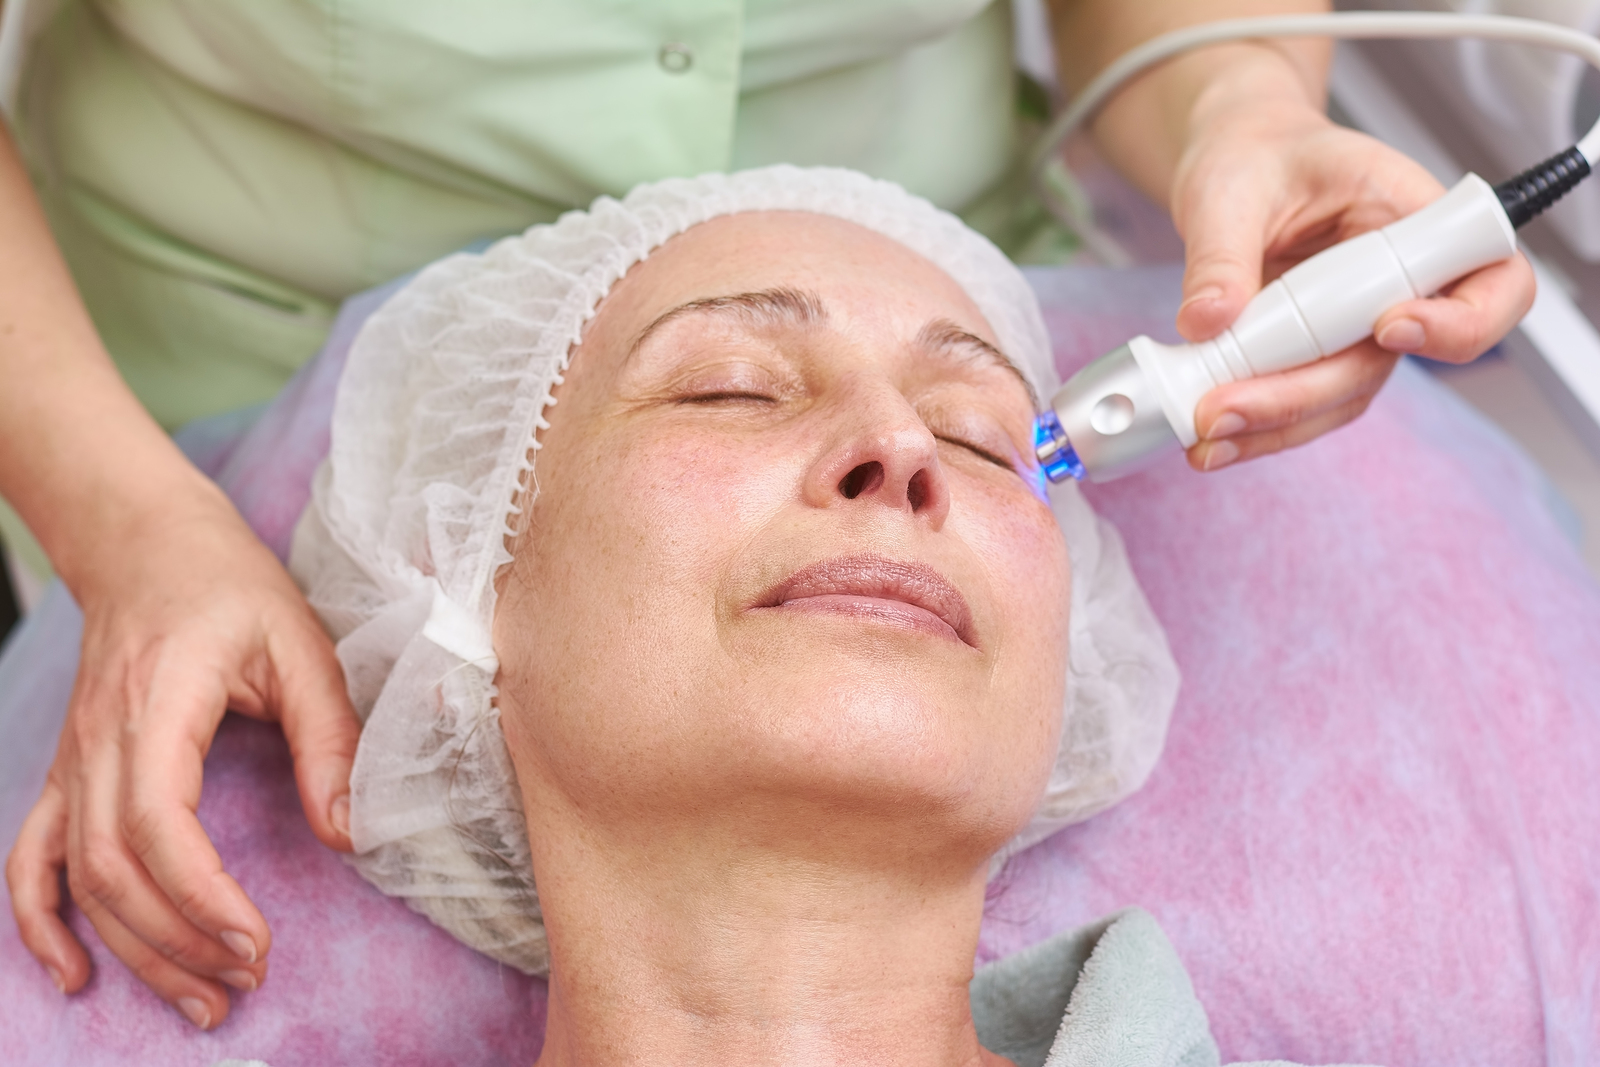 rf skin tightening. Radio frequency treatment - anti-wrinkle, anti -aging